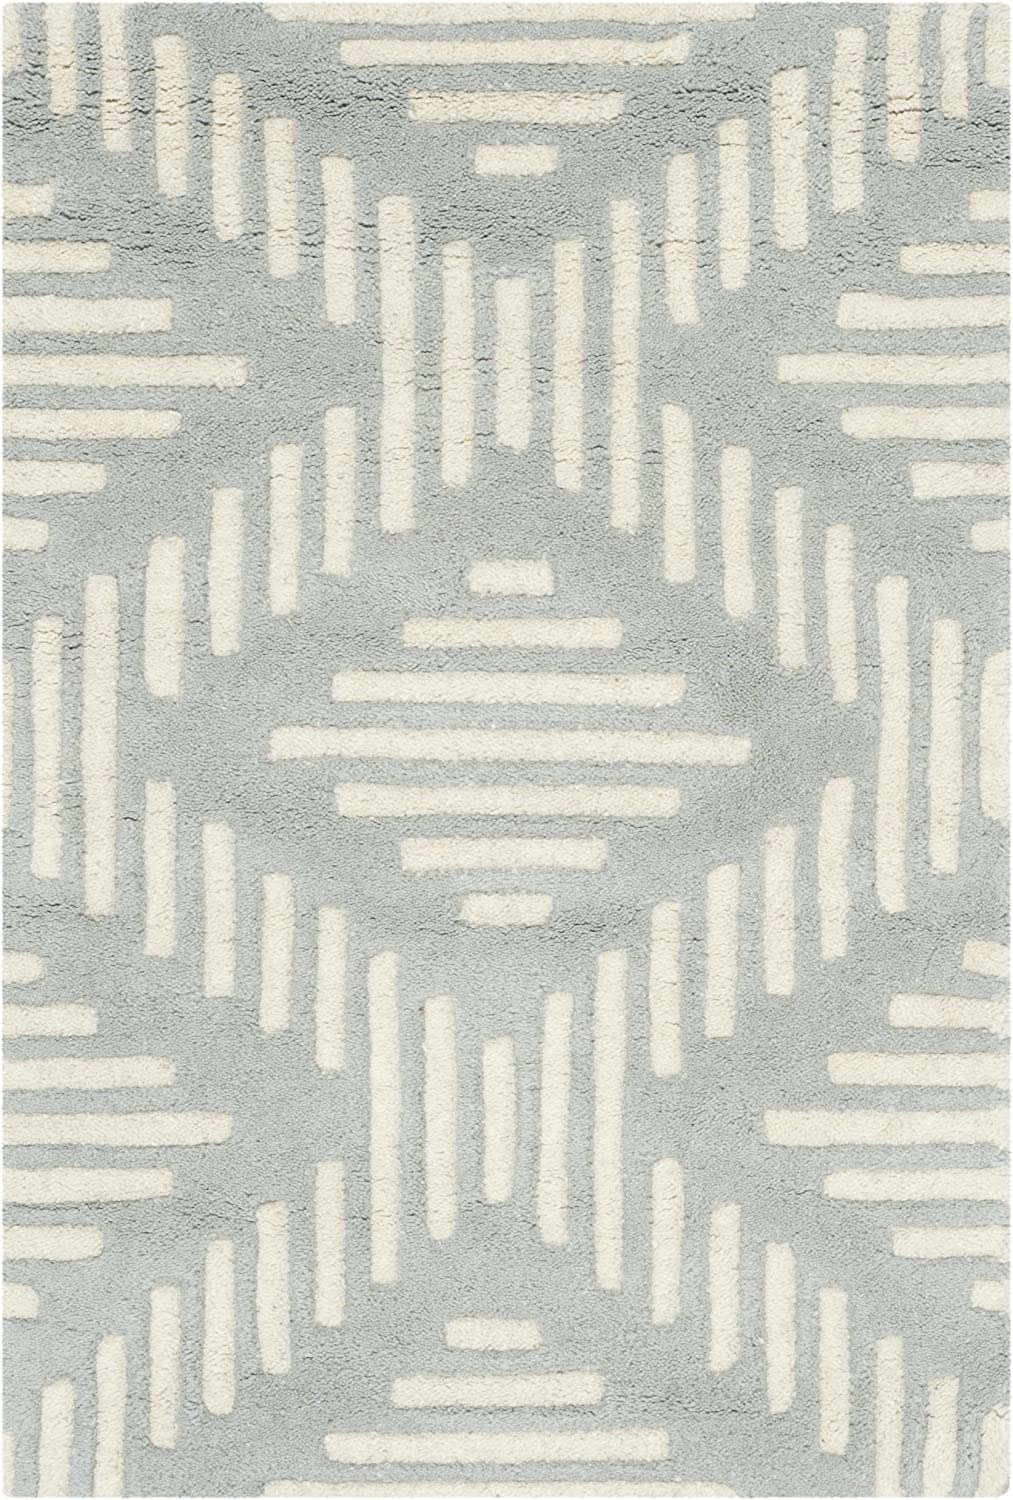 Safavieh Chatham Collection Cht744e Handmade Geometric Premium Wool Accent Rug 2 X 3 Grey Ivory Furniture Decor